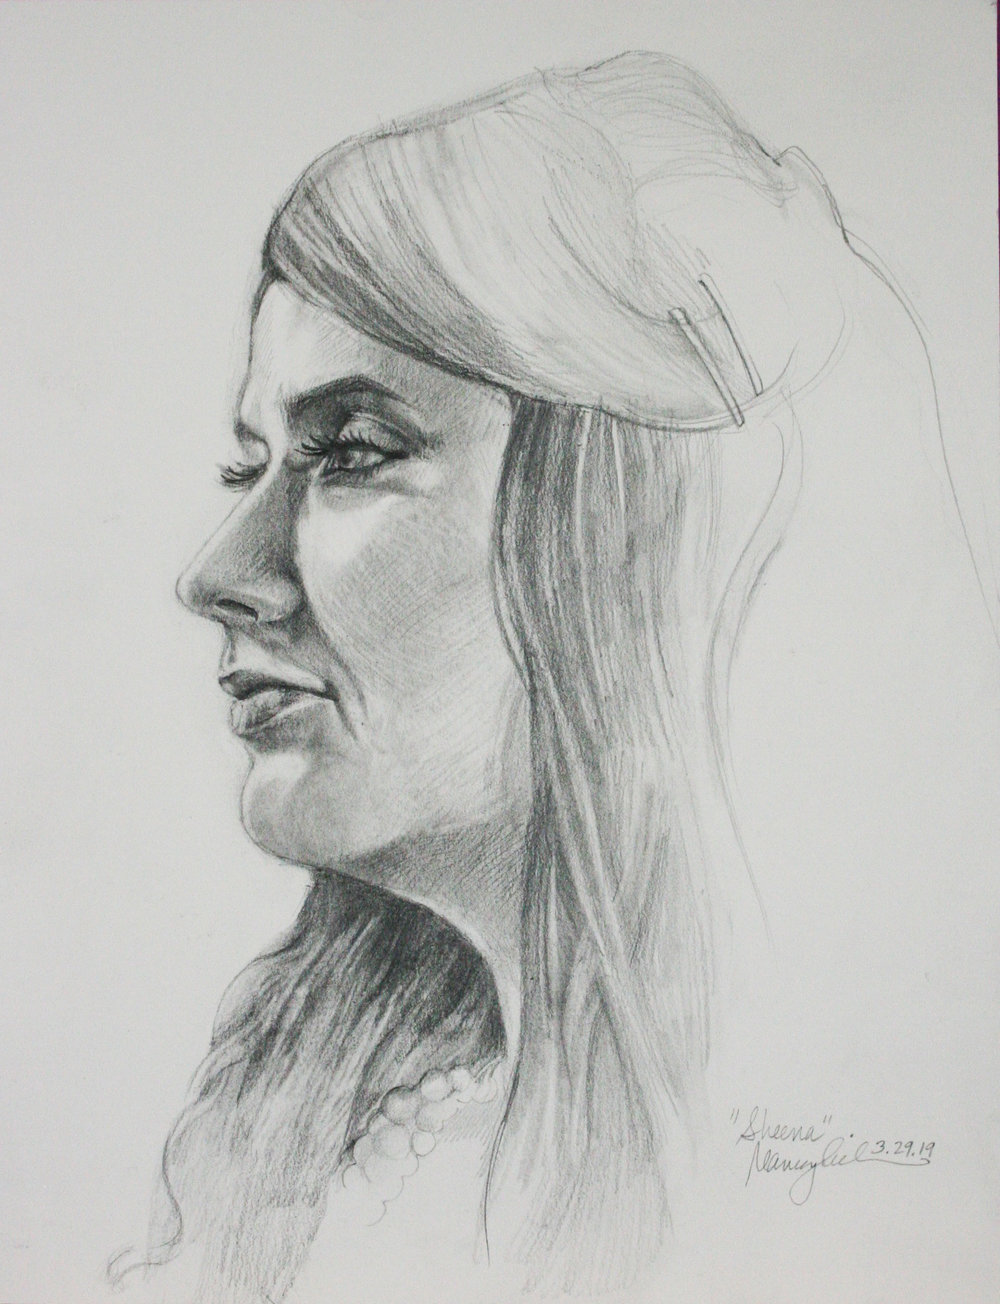 Nancy Lick did this charcoal drawing.